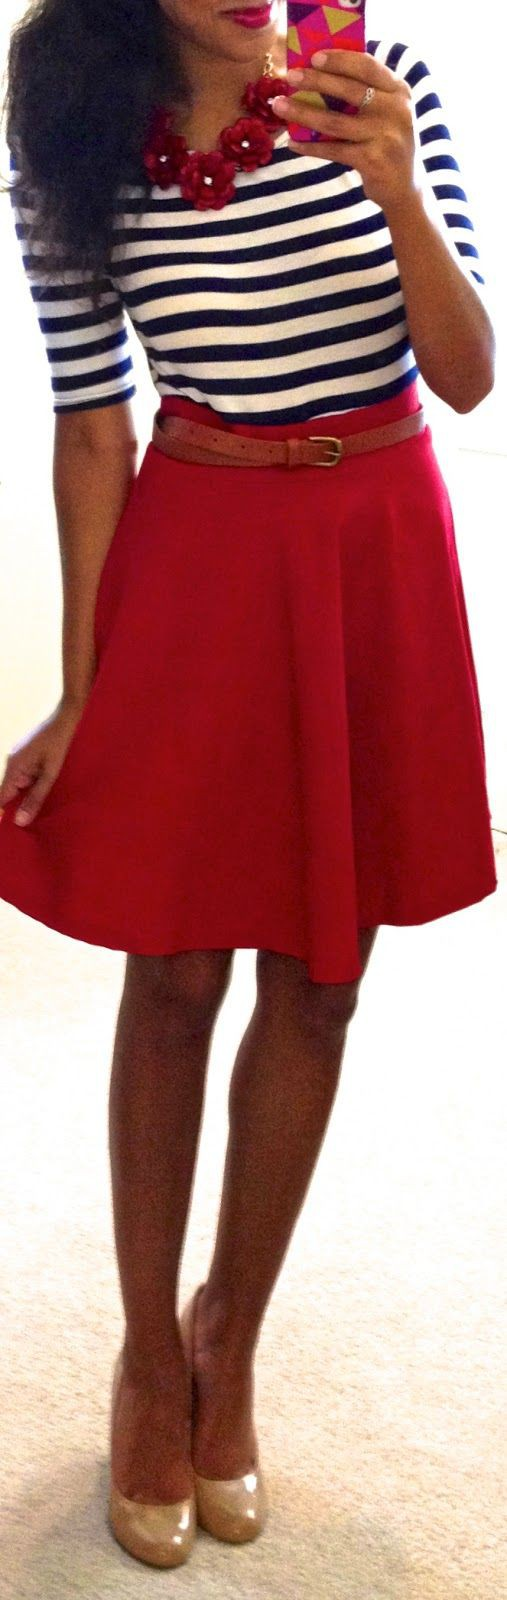 Summer Red Skirt Outfit